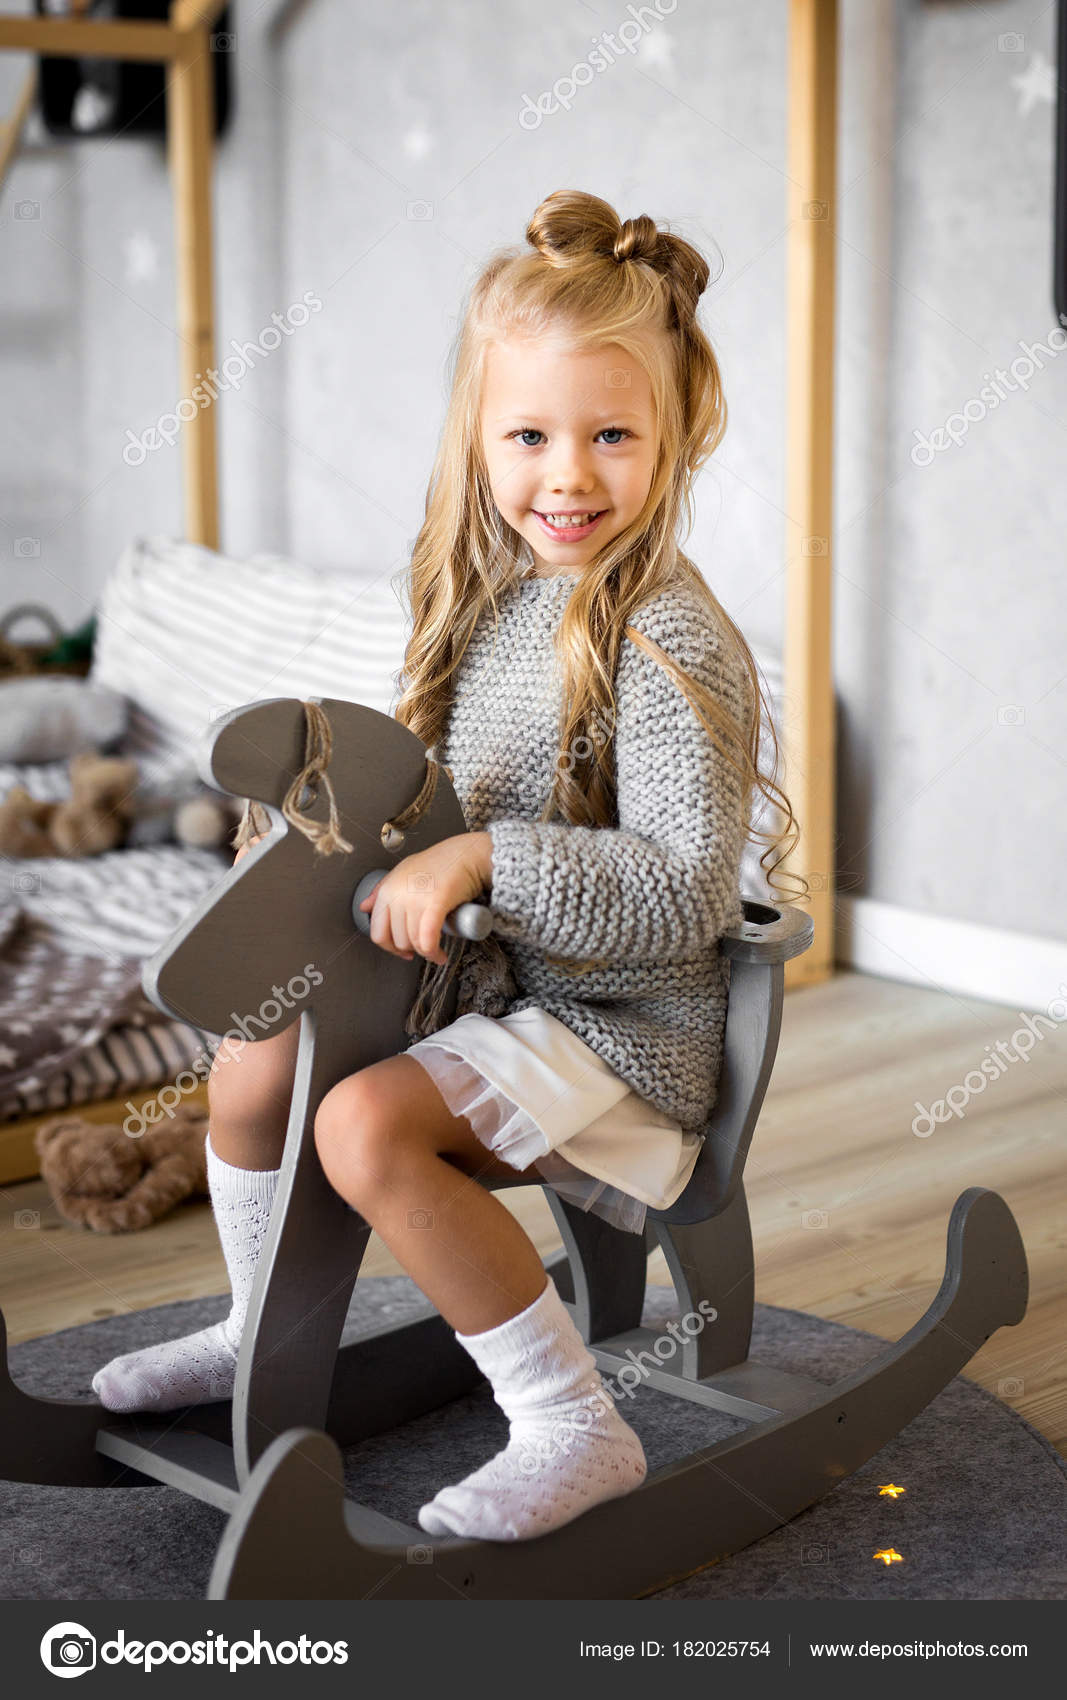 Happy Little Girl Riding Toy Horse Room